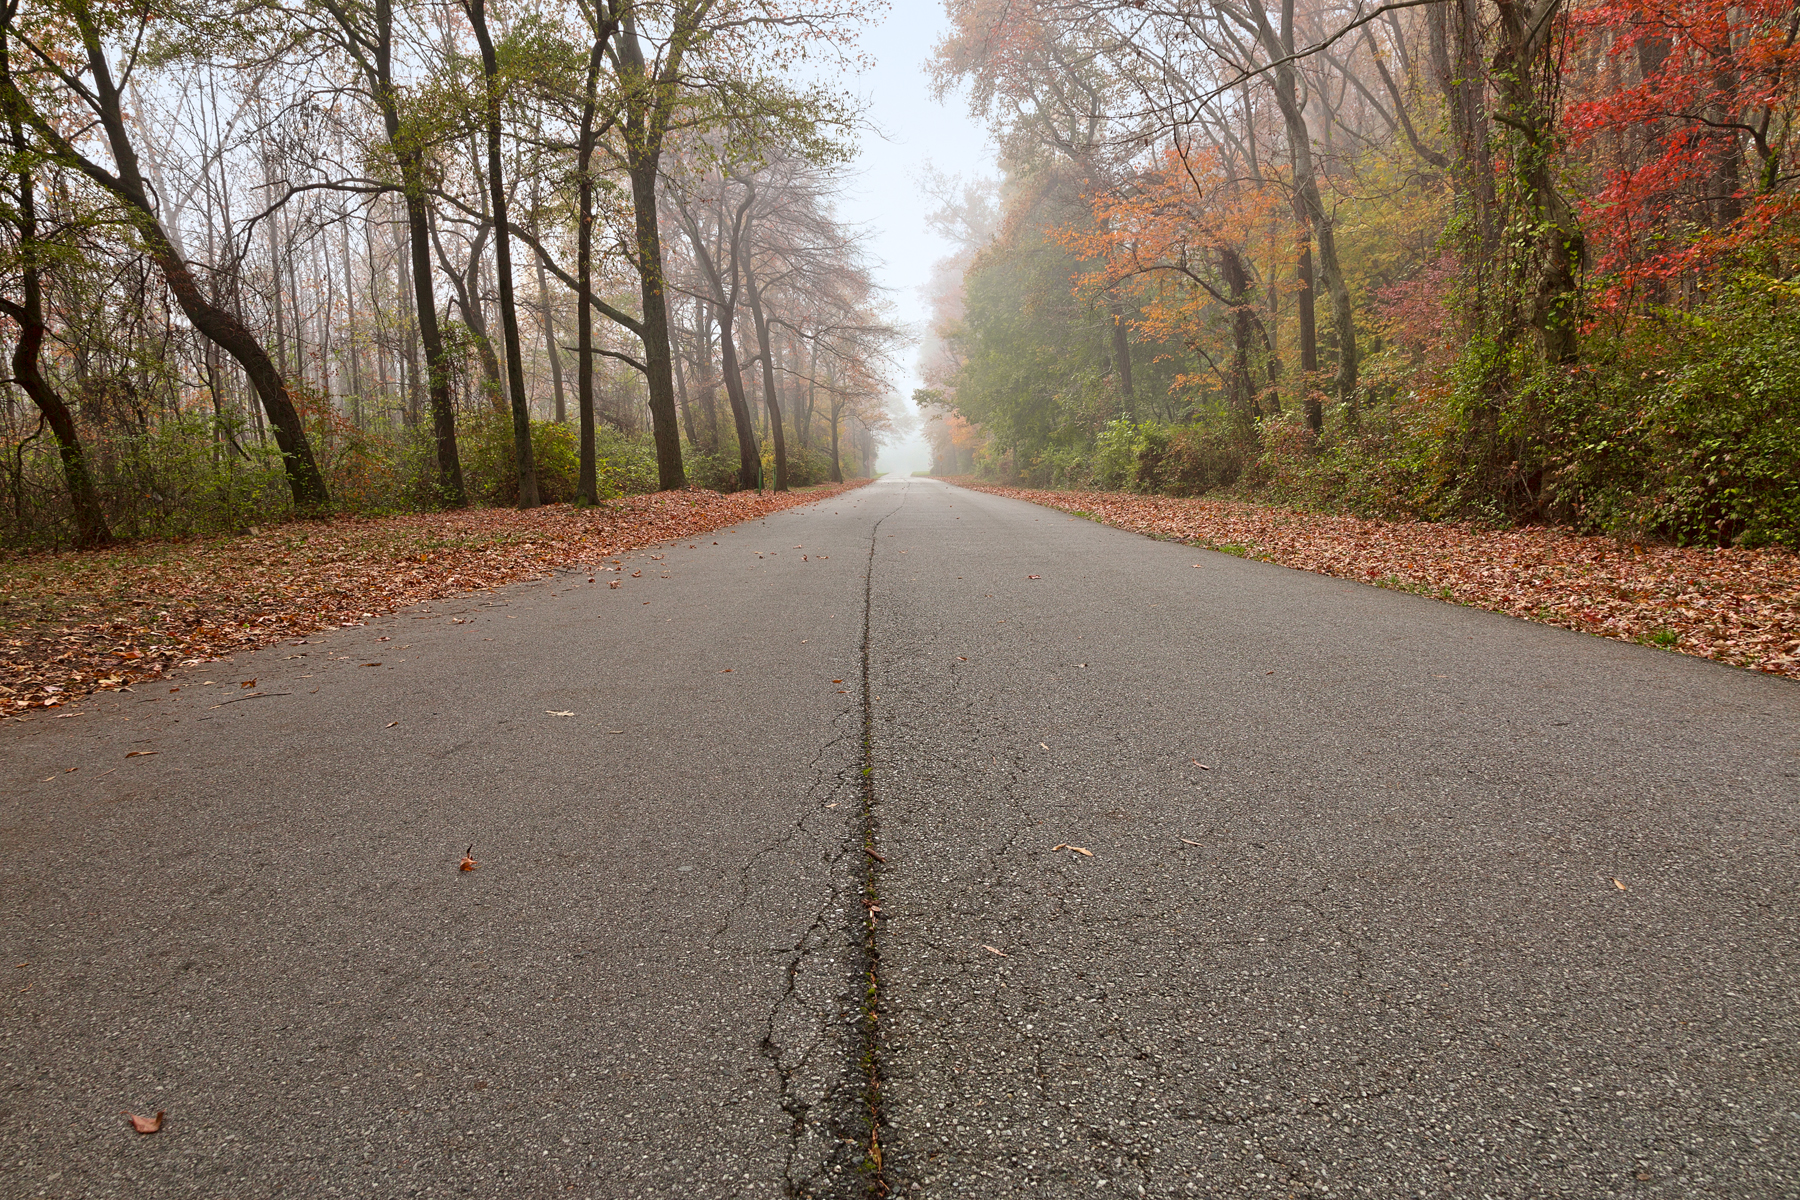 Misty fall road - hdr photo